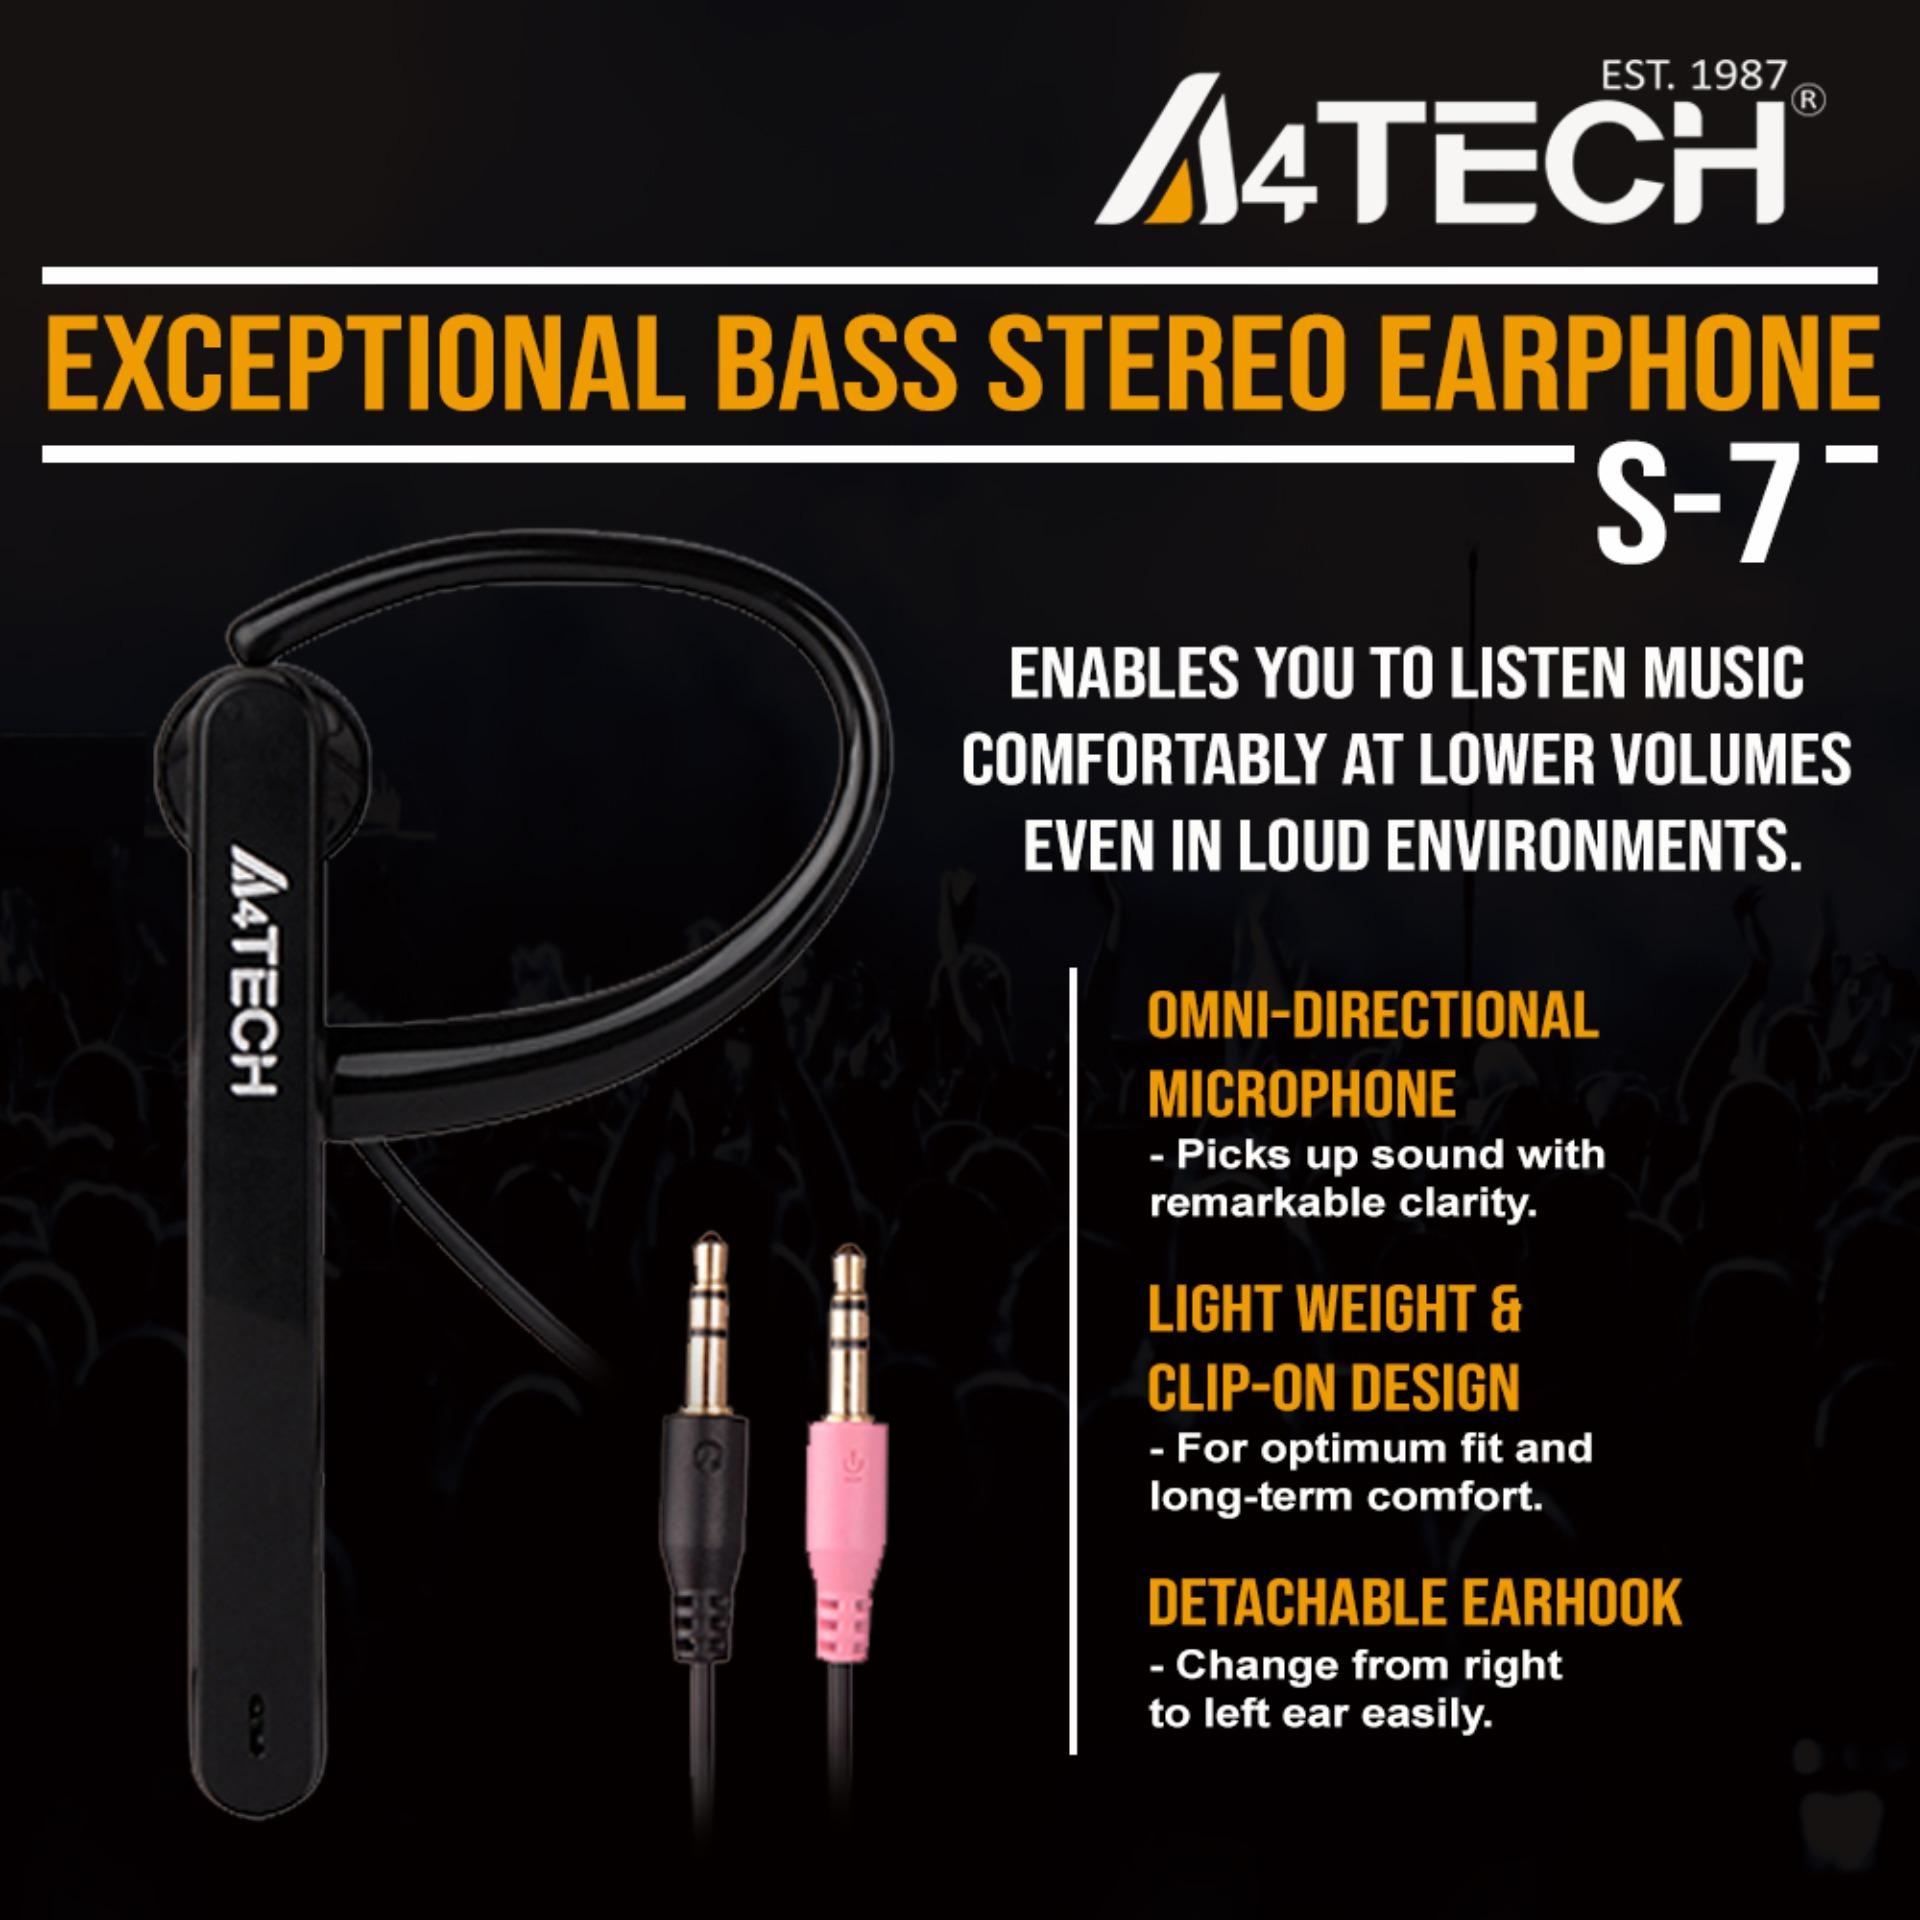 In-ear Headphone for sale - In-ear Headphones prices, brands & specs